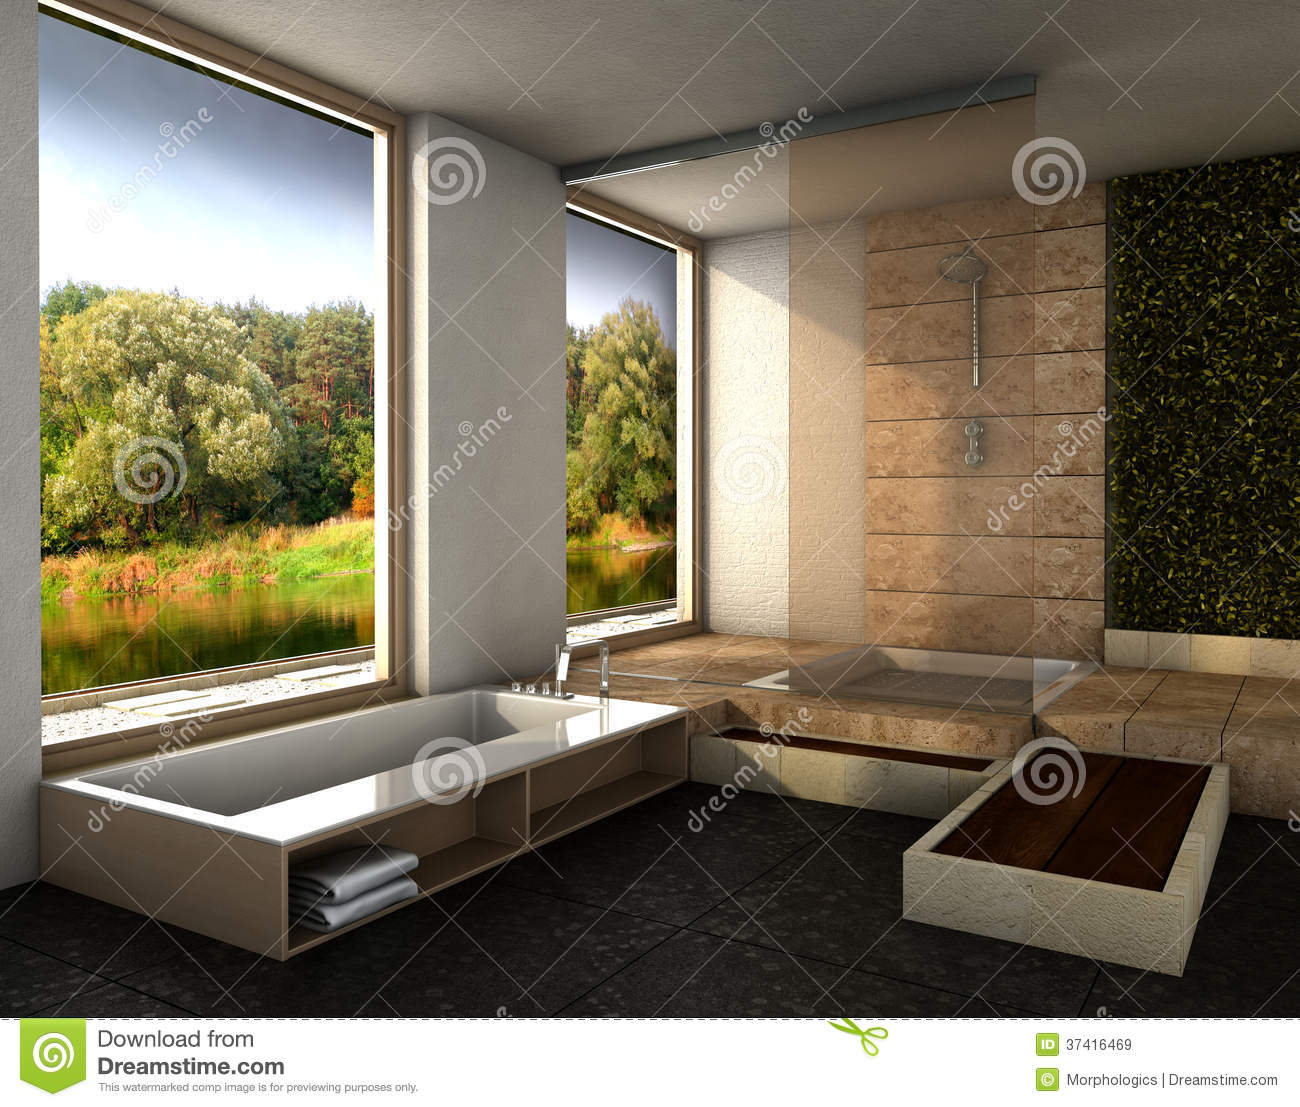 Modern bathroom royalty free stock images image 37416469 - Interior design bathroom colors ...